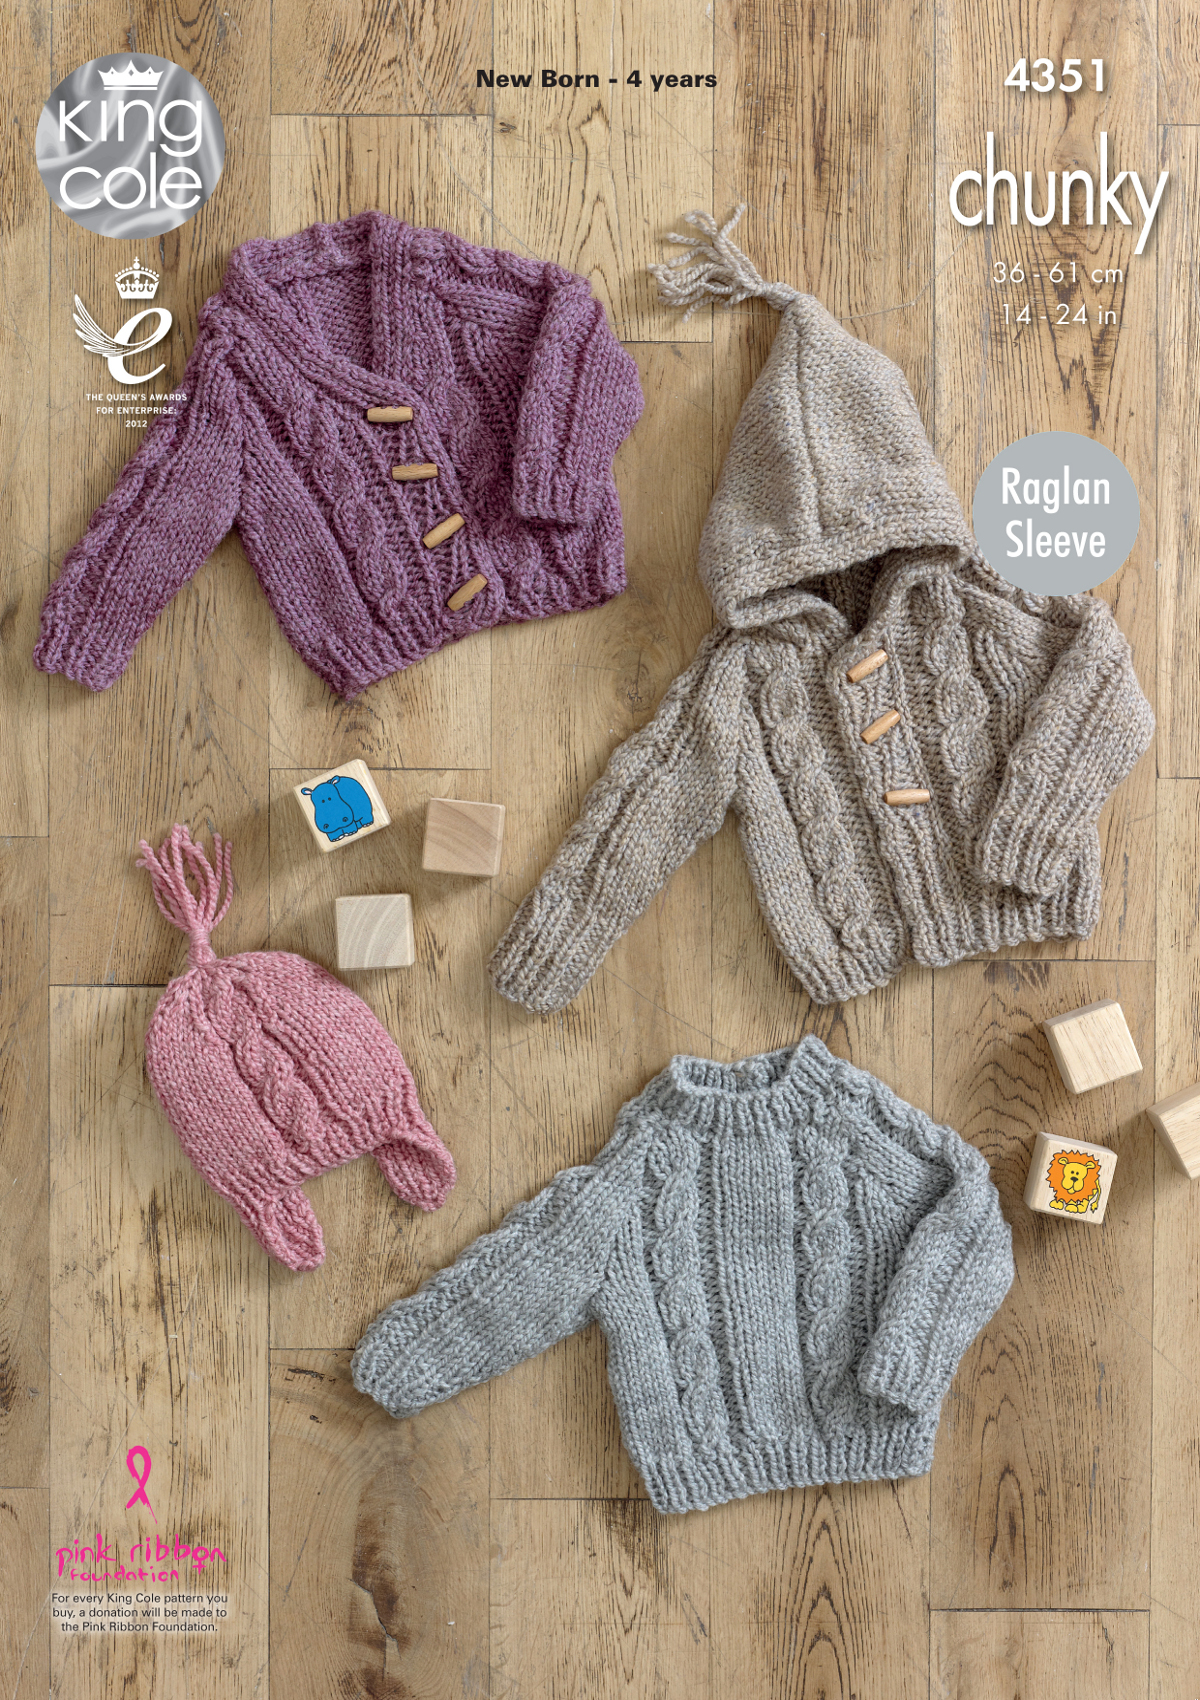 King Cole Baby Knitting Pattern Raglan Sleeve Sweater Cardigans Hat ...